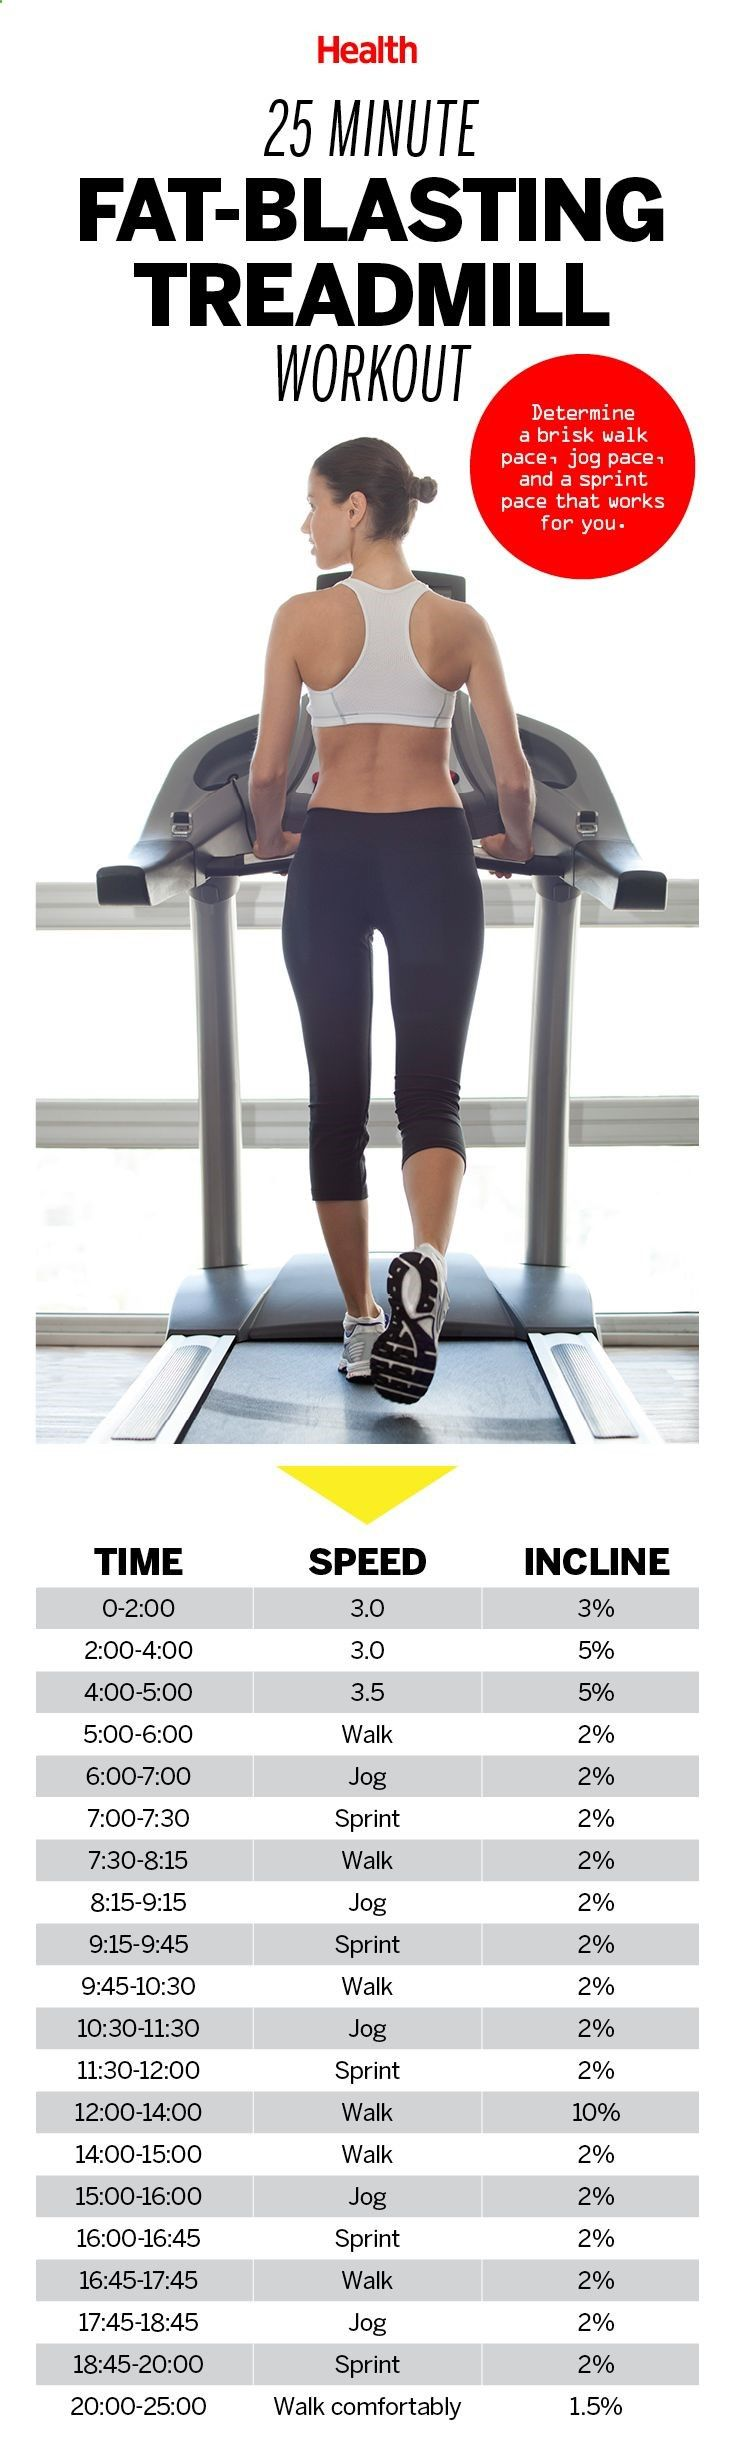 See more here ► www.youtube.com/... Tags: foods to lose belly fat, tips to lose belly fat, lose my belly fat - A Fat-Burning Treadmill Workout That's Actually Fun #exercise #diet #workout #fitness #health